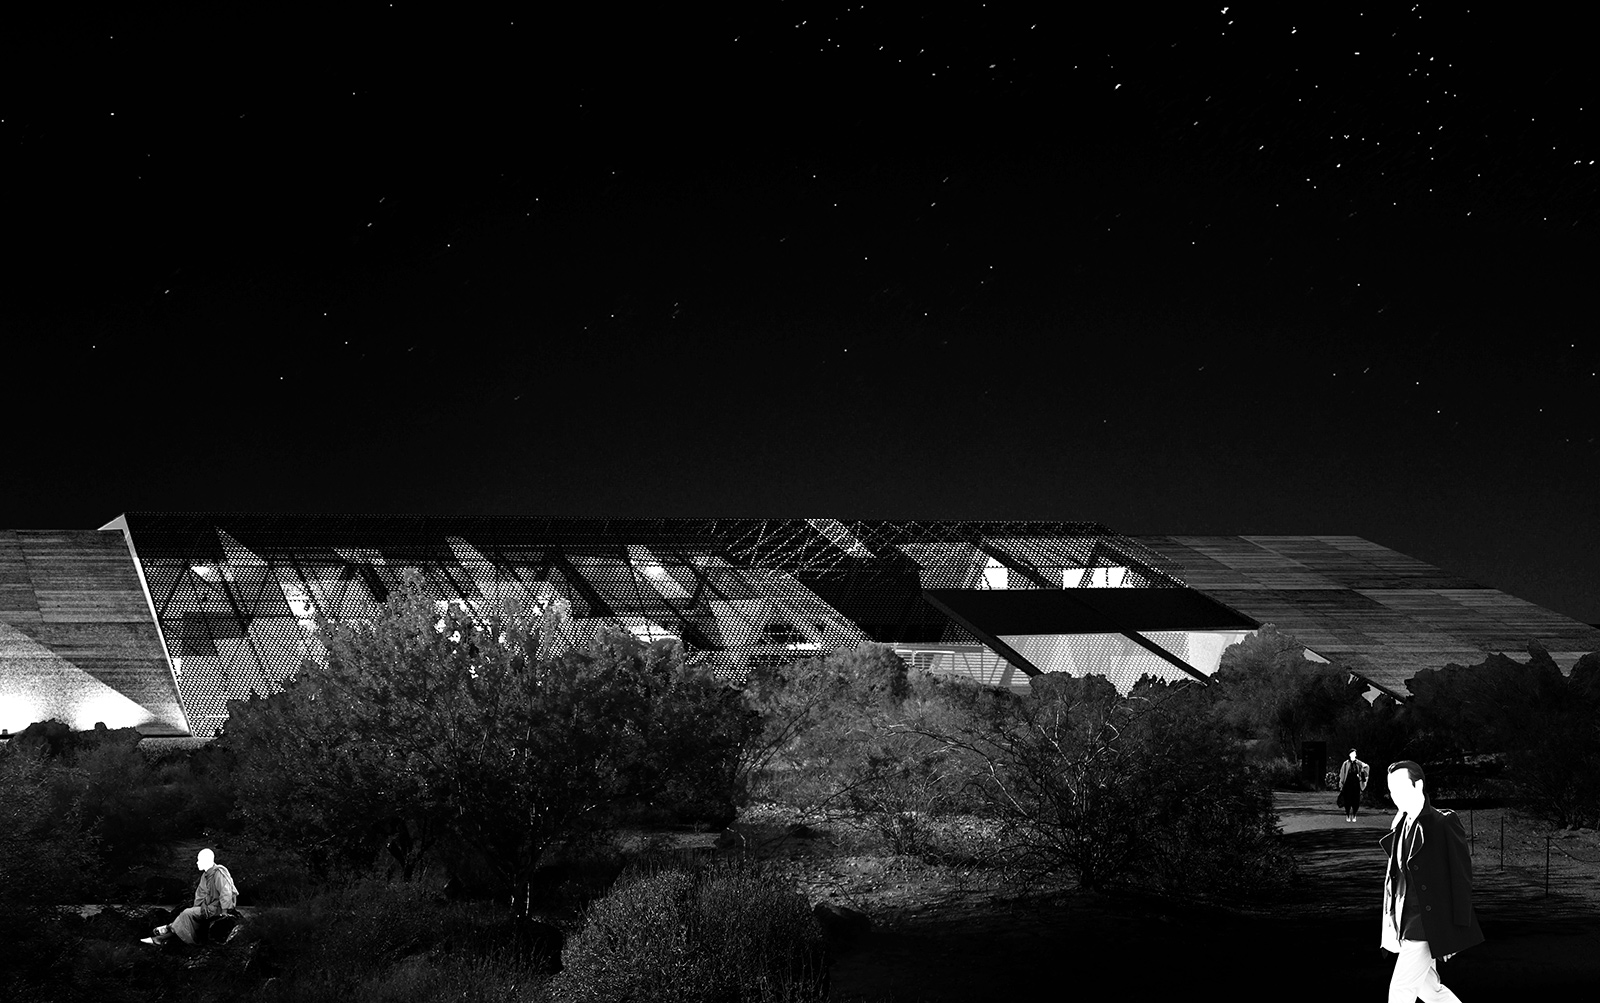 Perspective of the desert wash landscape with visitor trail in front of the glowing RACA gallery extension at night